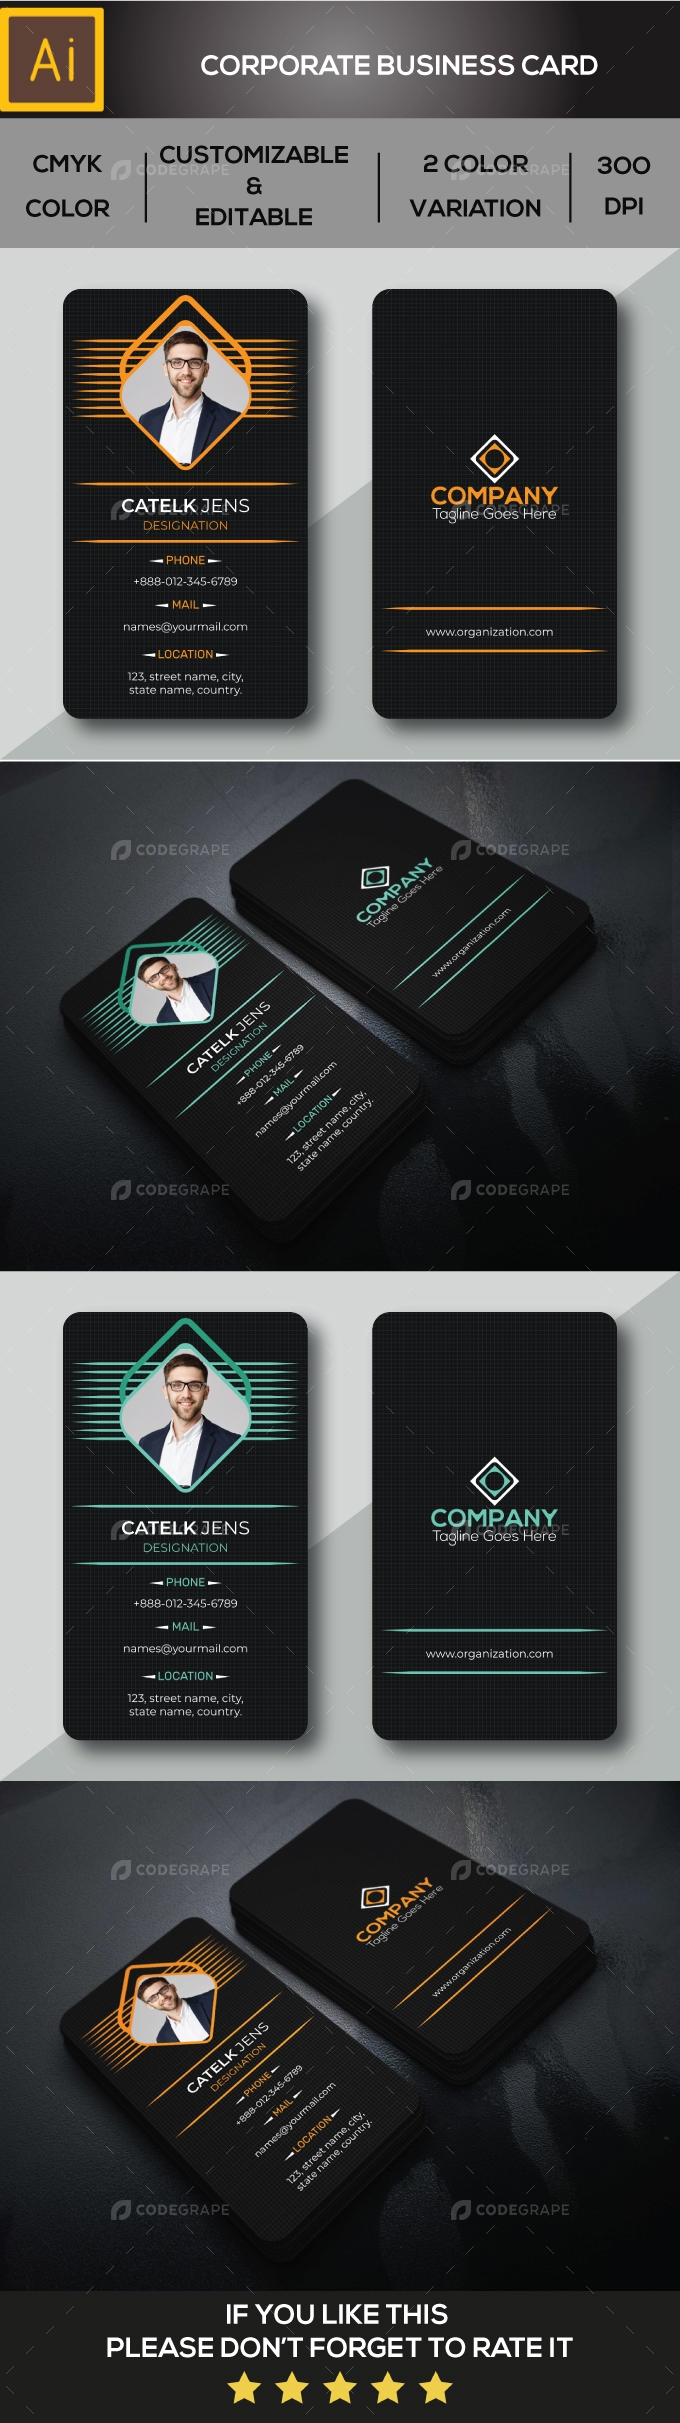 Corporate Business Card Vertical Template